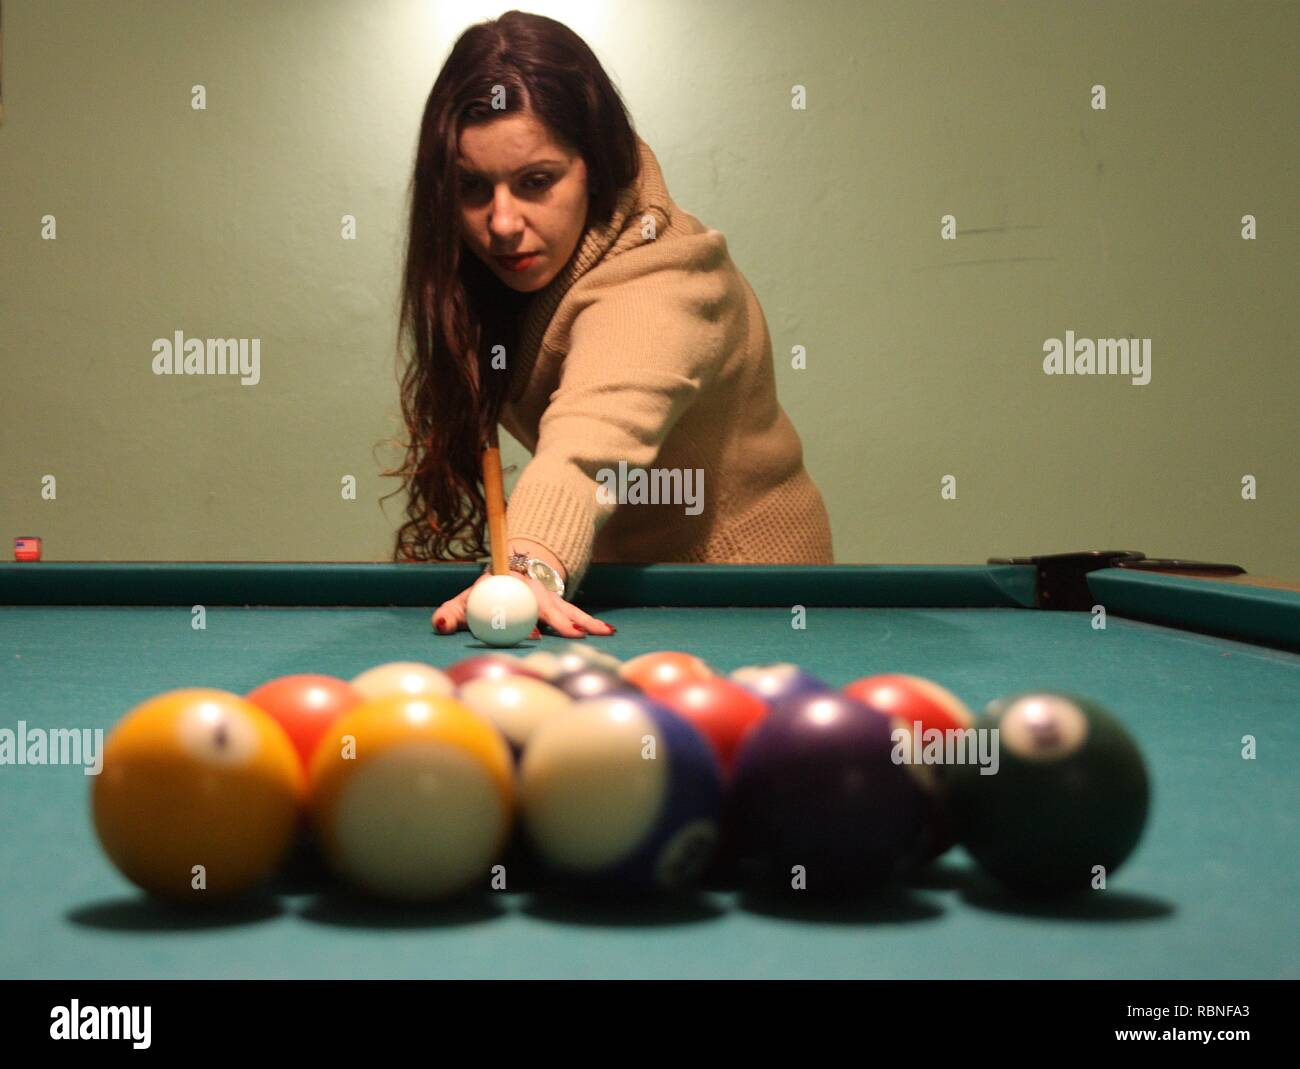 brown-haired caucasian girl plays billiards. the person is attentive to the game, the cue, the balls and the holes - Stock Image